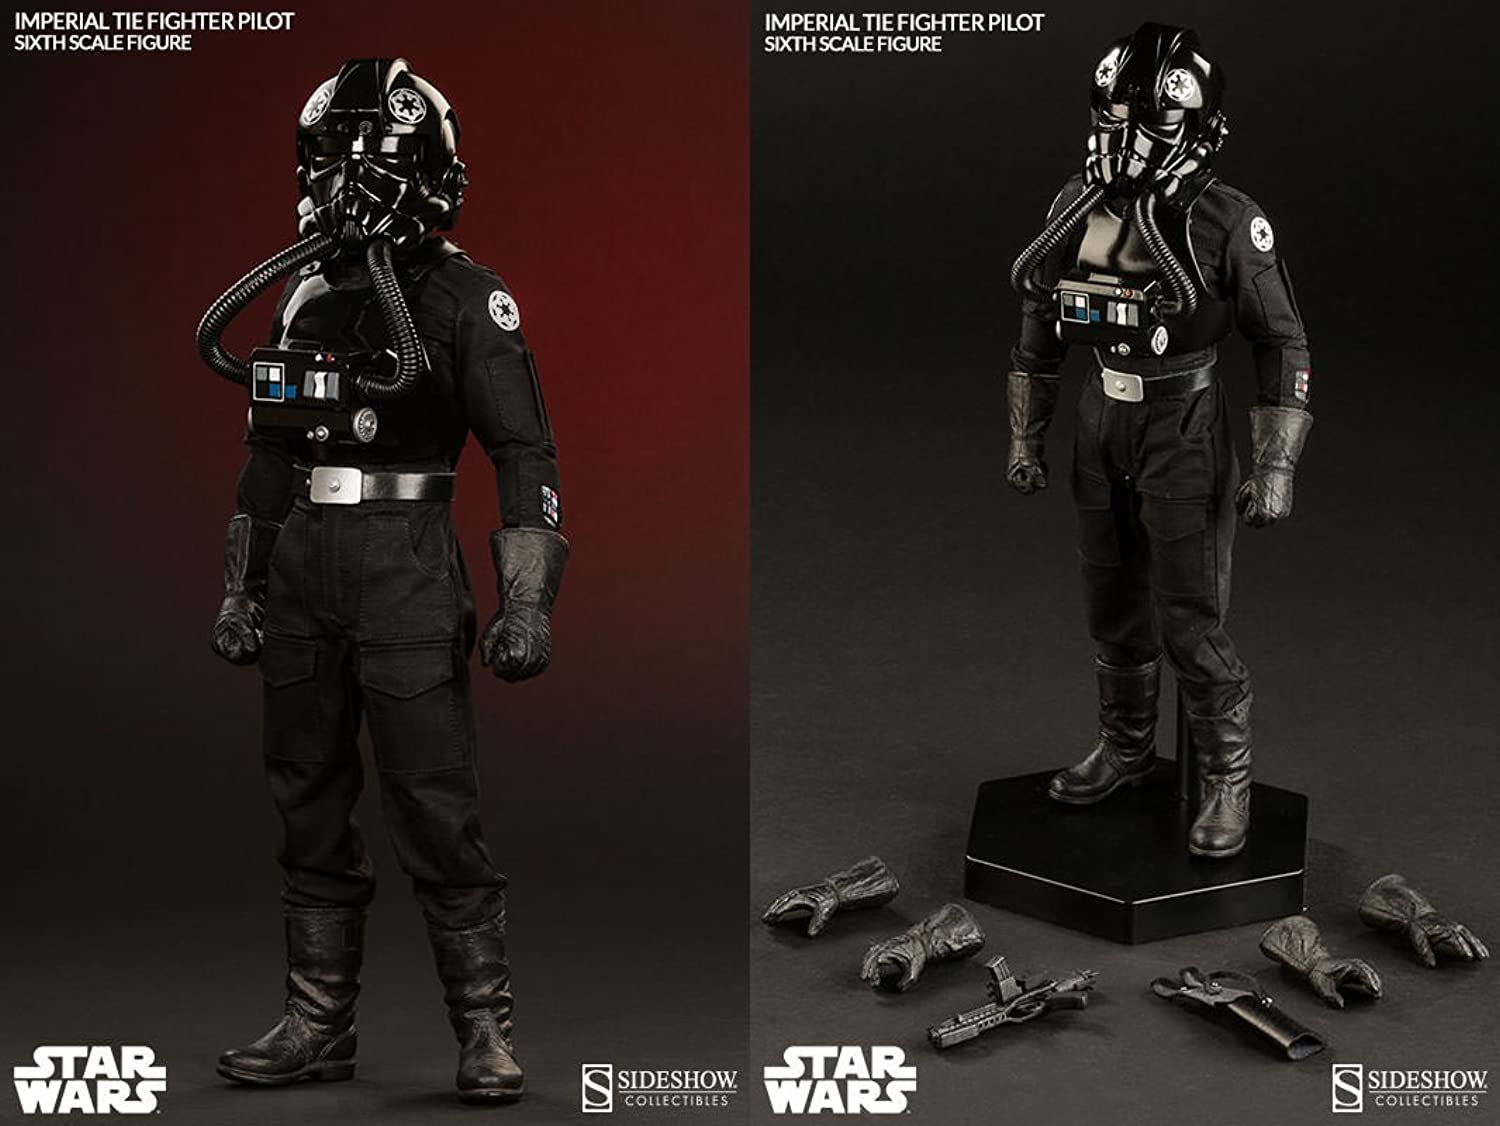 Sideshow Star Wars Episode IV A New Hope Imperial TIE Fighter Pilot 1 6 Scale Figure by Sideshow